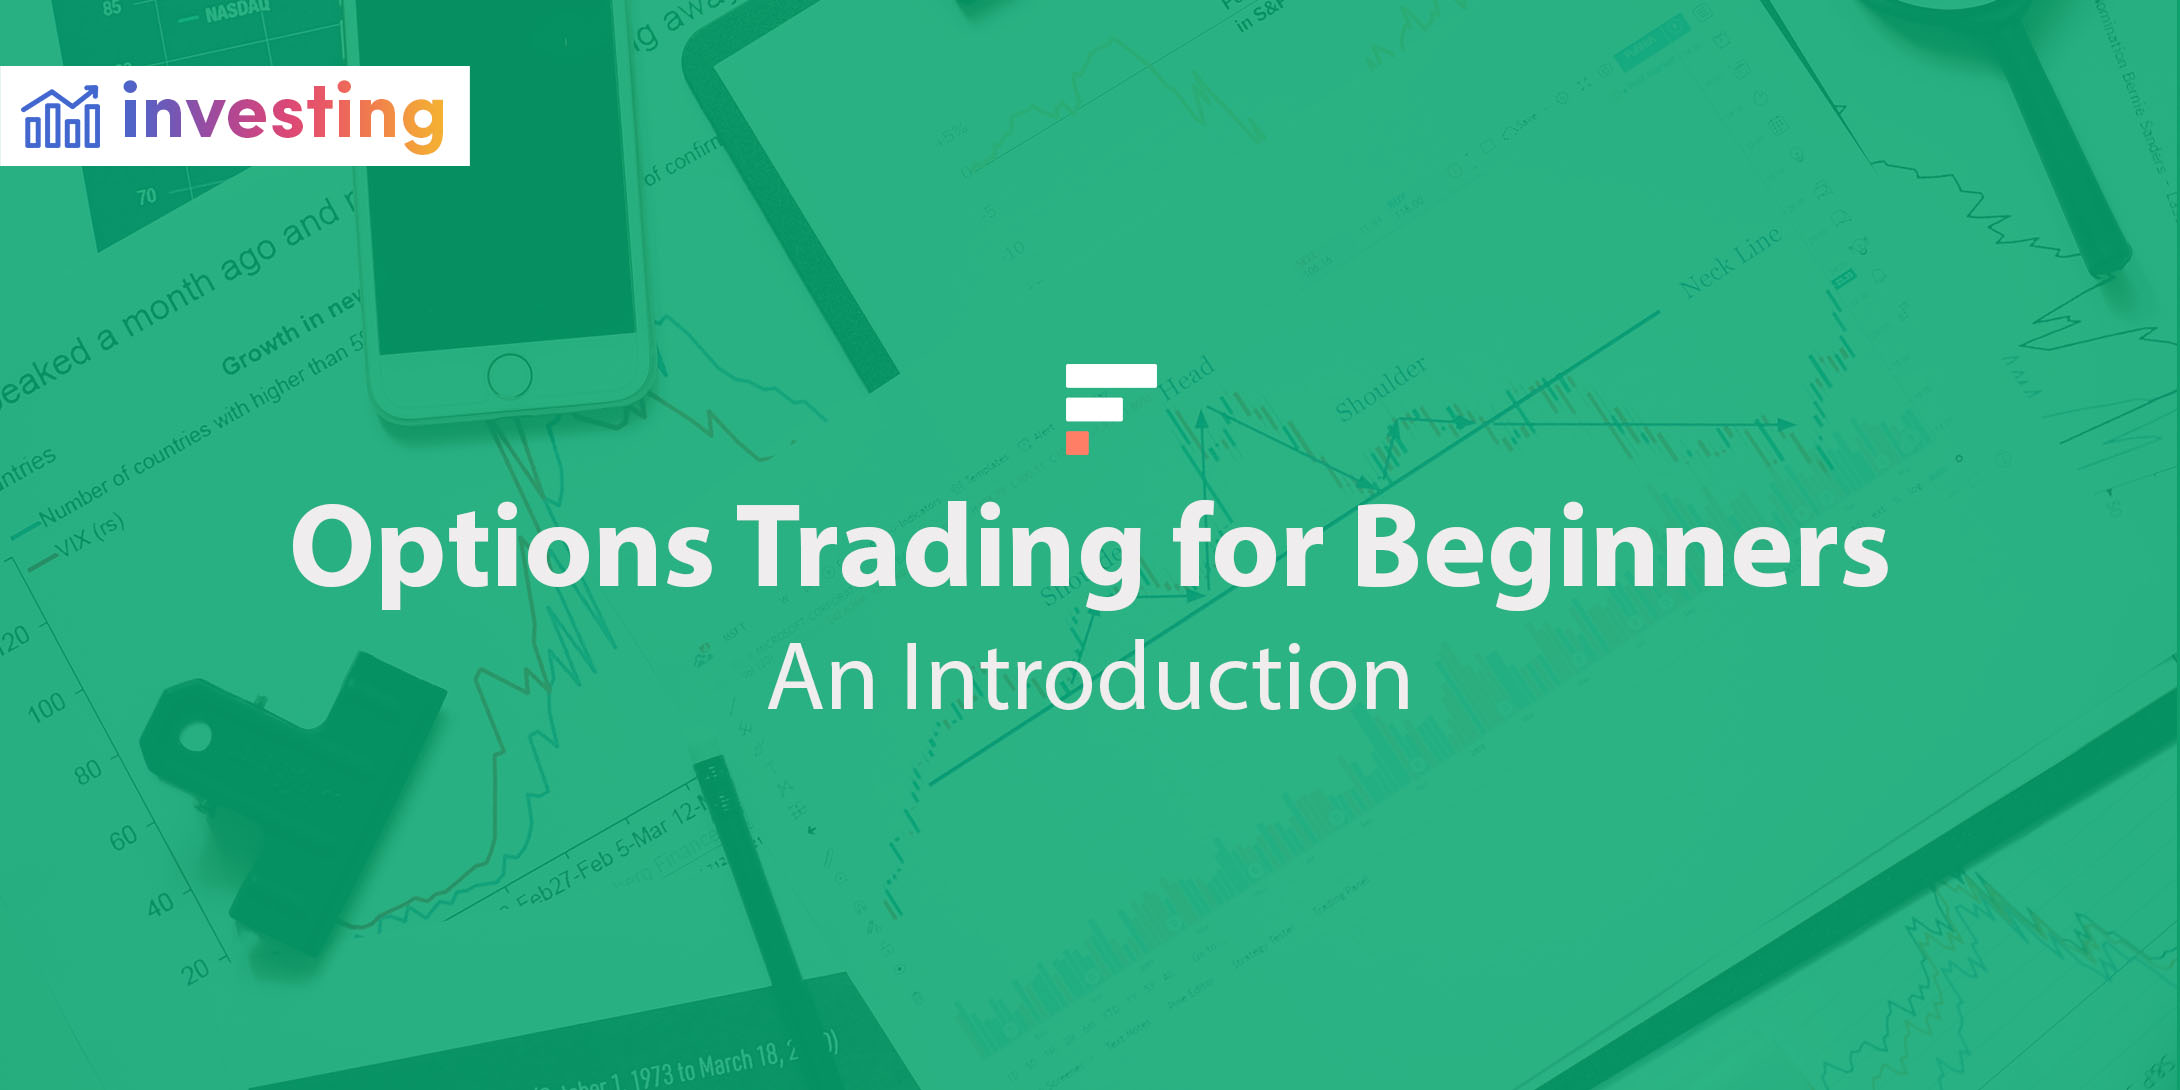 Options Trading for Beginners: An Introduction